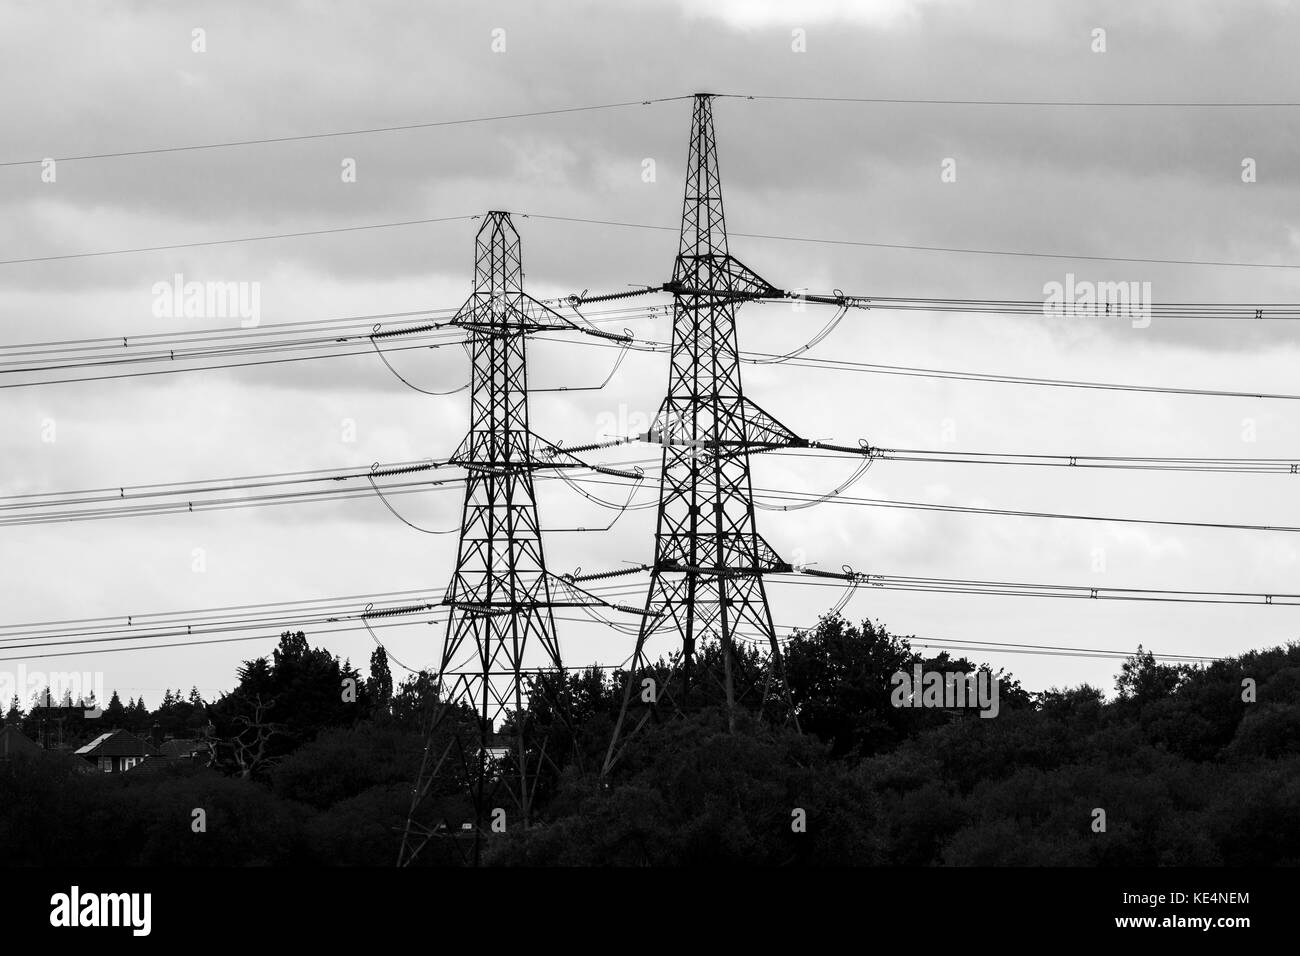 Two electricity pylons and power transmission cables in the countryside of the lower River Test, Totton & Ealing, - Stock Image